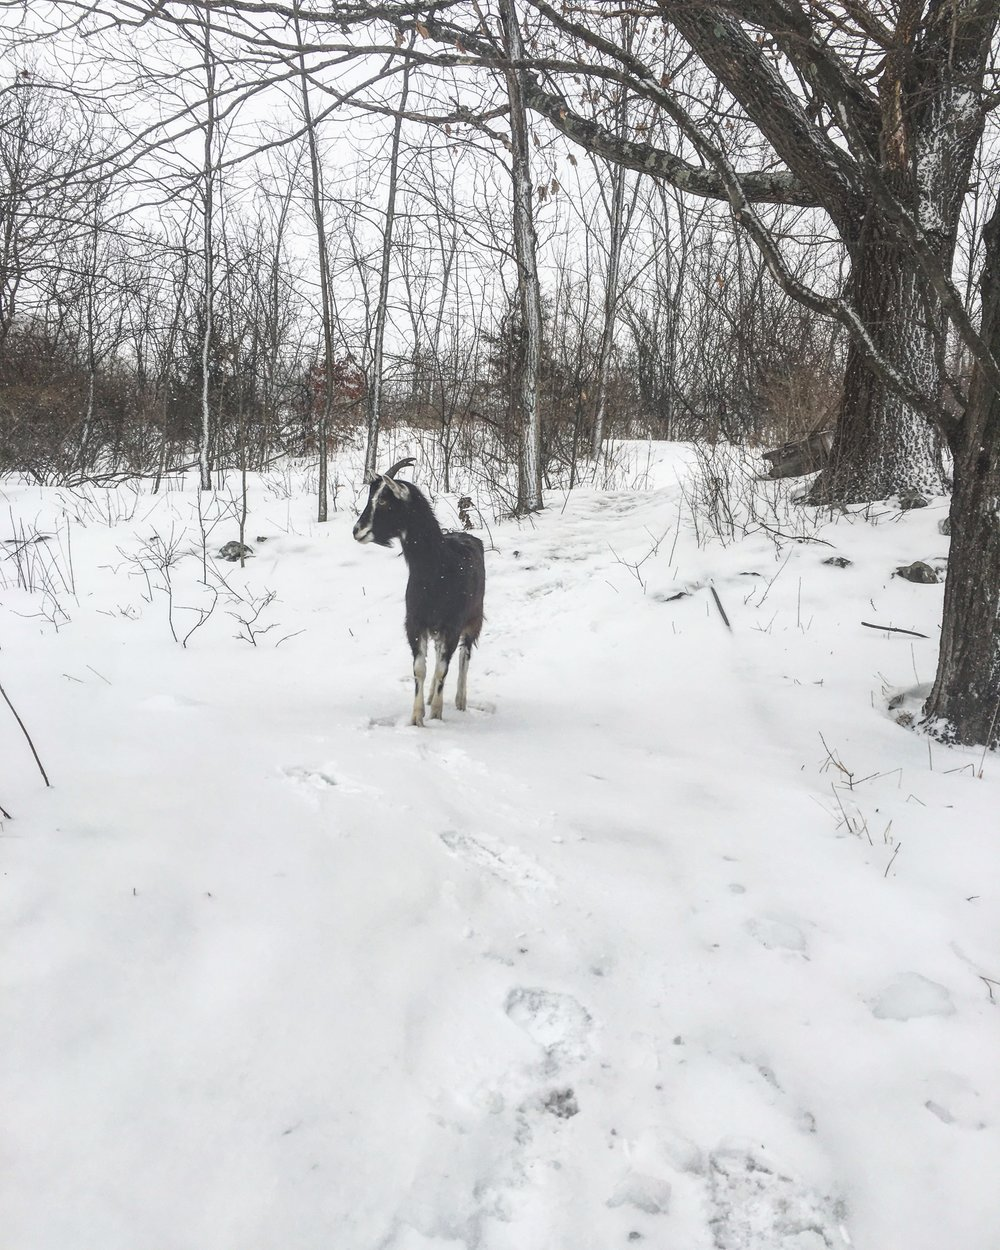 Lulu, my brave little toaster, walking back down to the doeling barn the morning after our adventures.